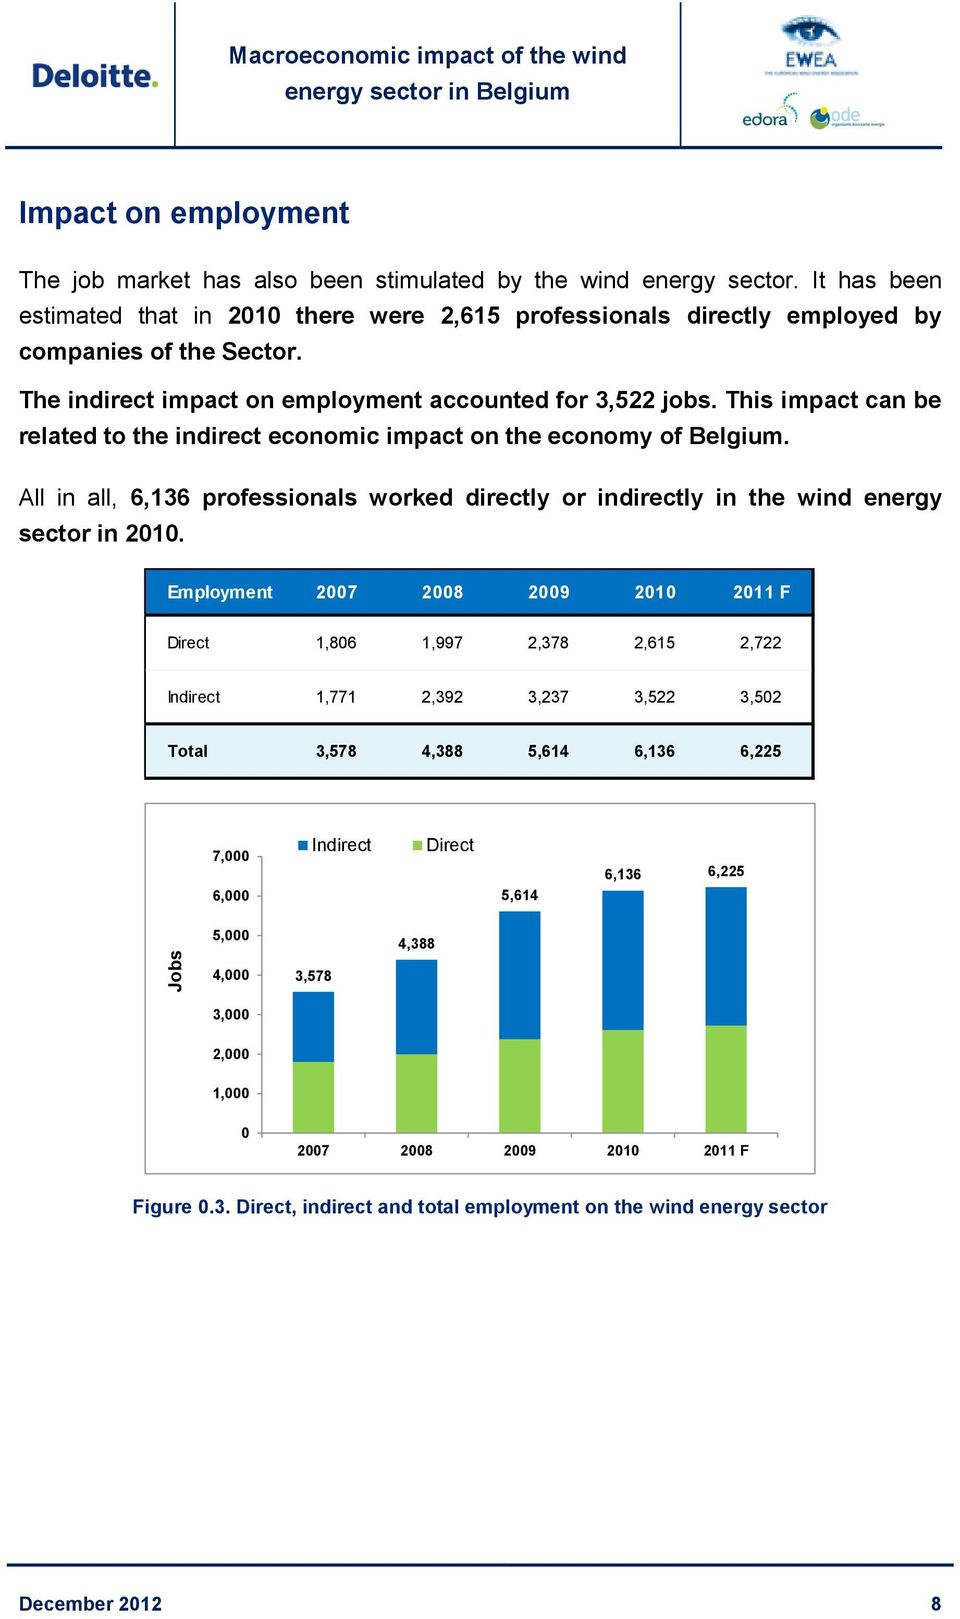 This impact can be related to the indirect economic impact on the economy of Belgium. All in all, 6,136 professionals worked directly or indirectly in the wind energy sector in 2010.